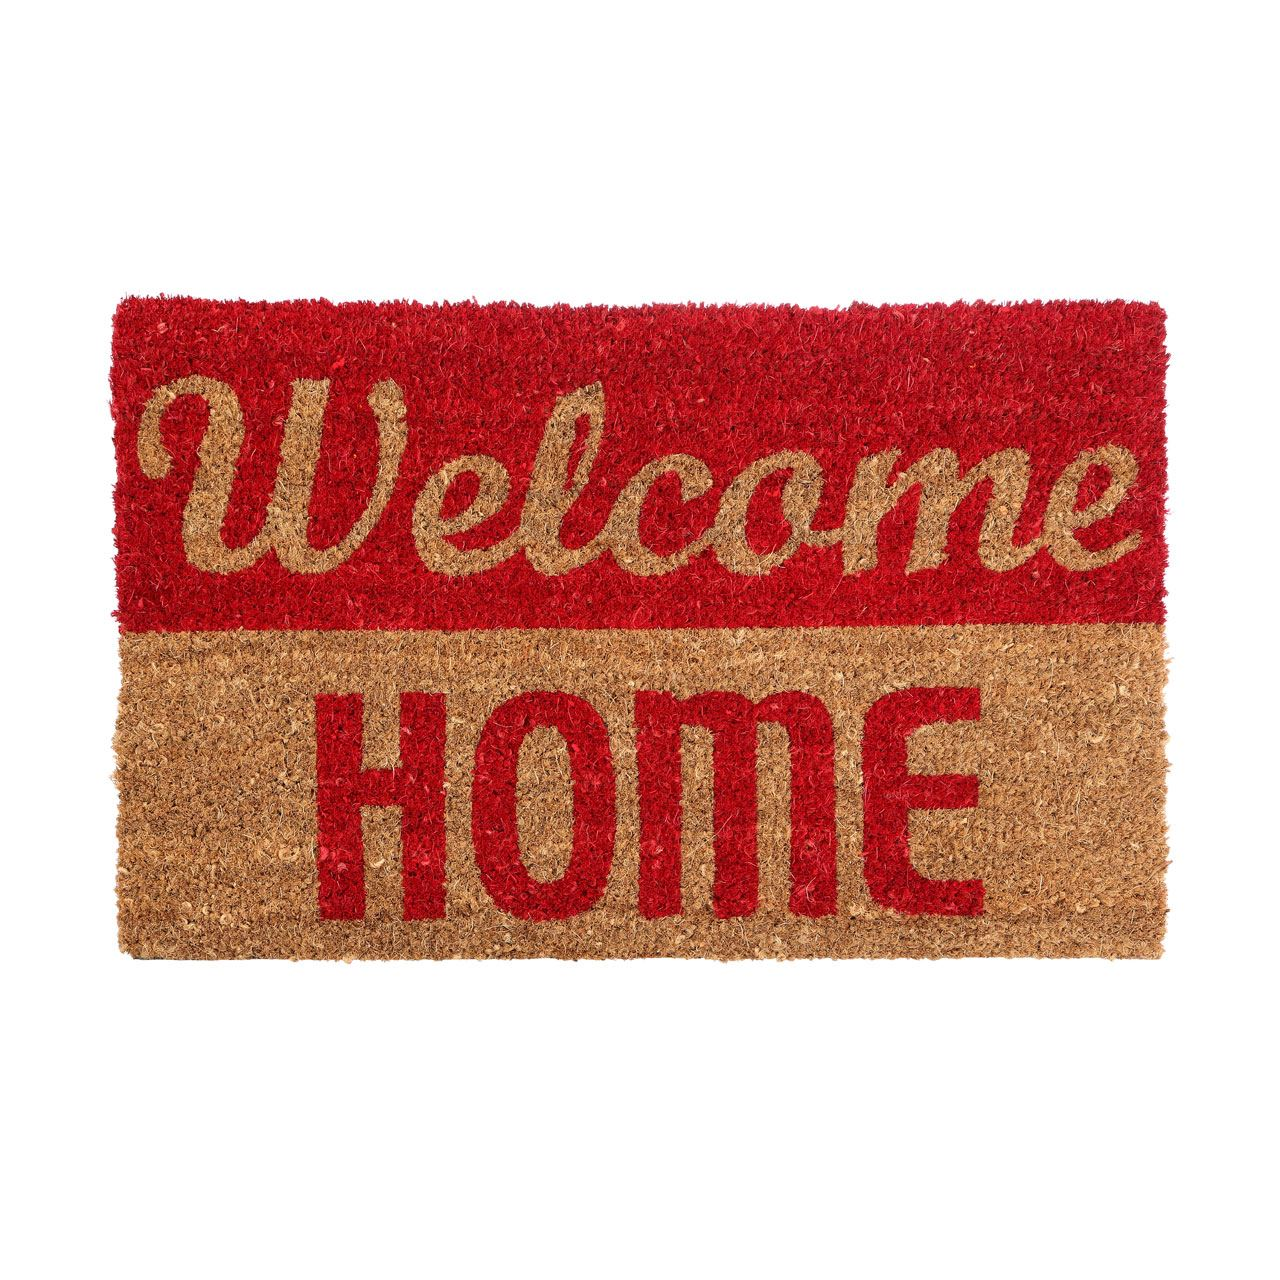 Welcome Home Doormat, Durable, Poly Vinyl Chloride Backed Coir